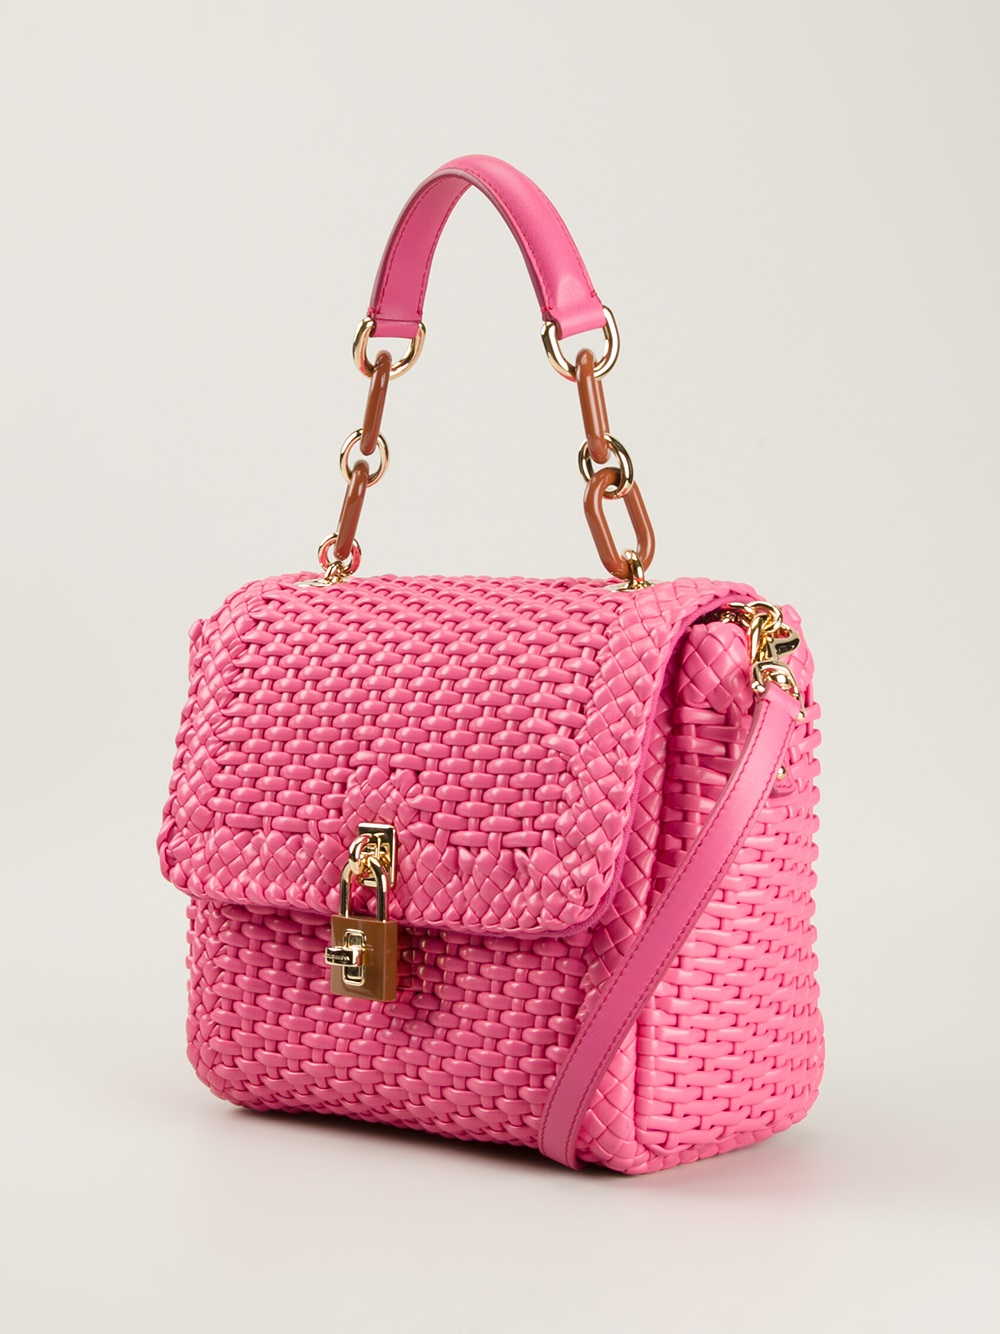 Lyst - Dolce   Gabbana Woven Tote Bag in Pink 347c0dc8315e0